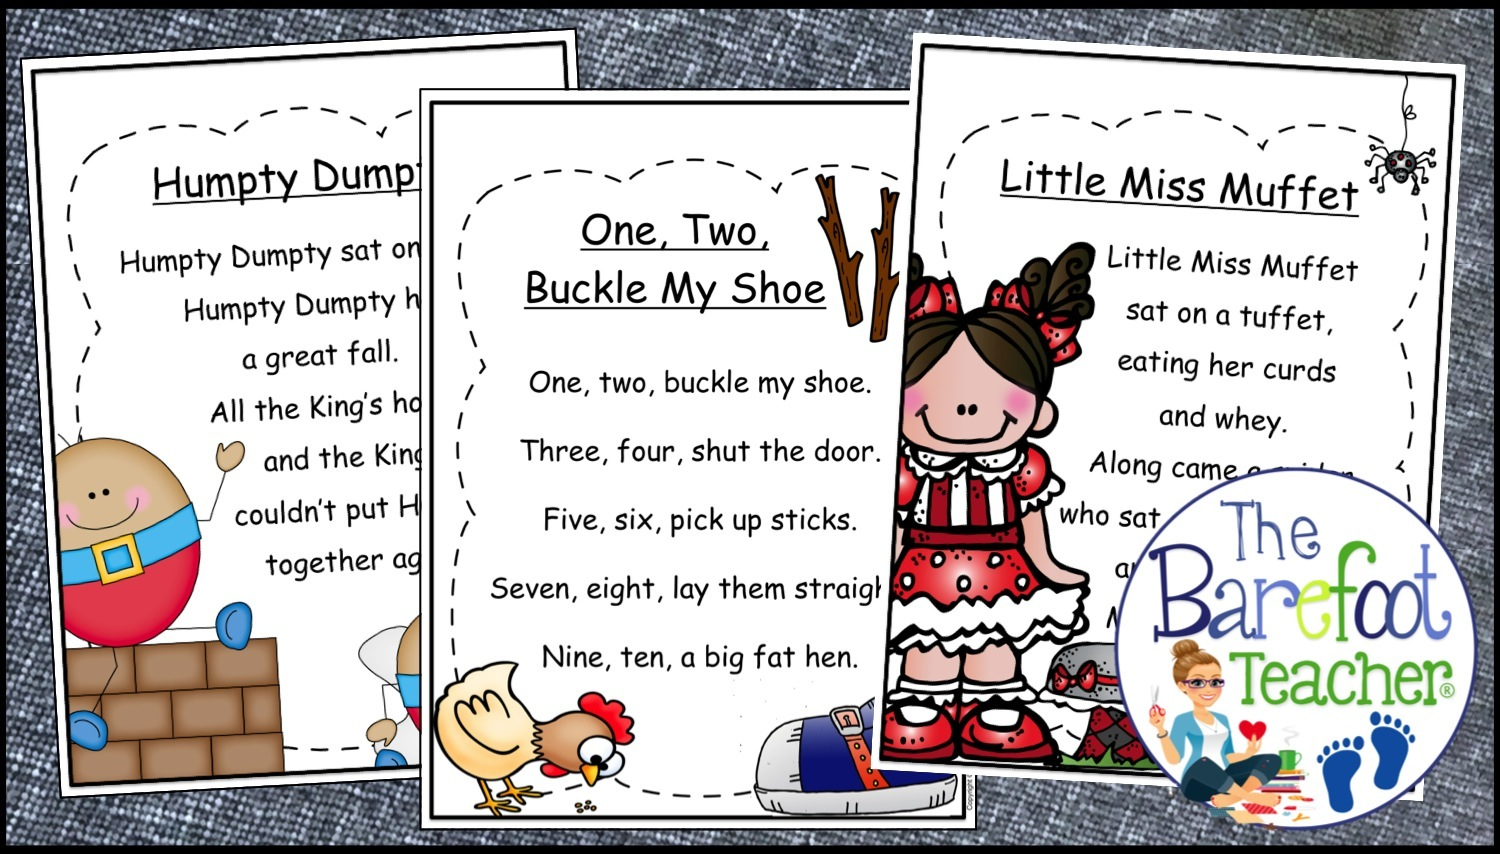 We Also Like To Watch Cool School S Nursery Rhyme Videos On You If Ve Never Seen These Before Then Just Have Check Them Out